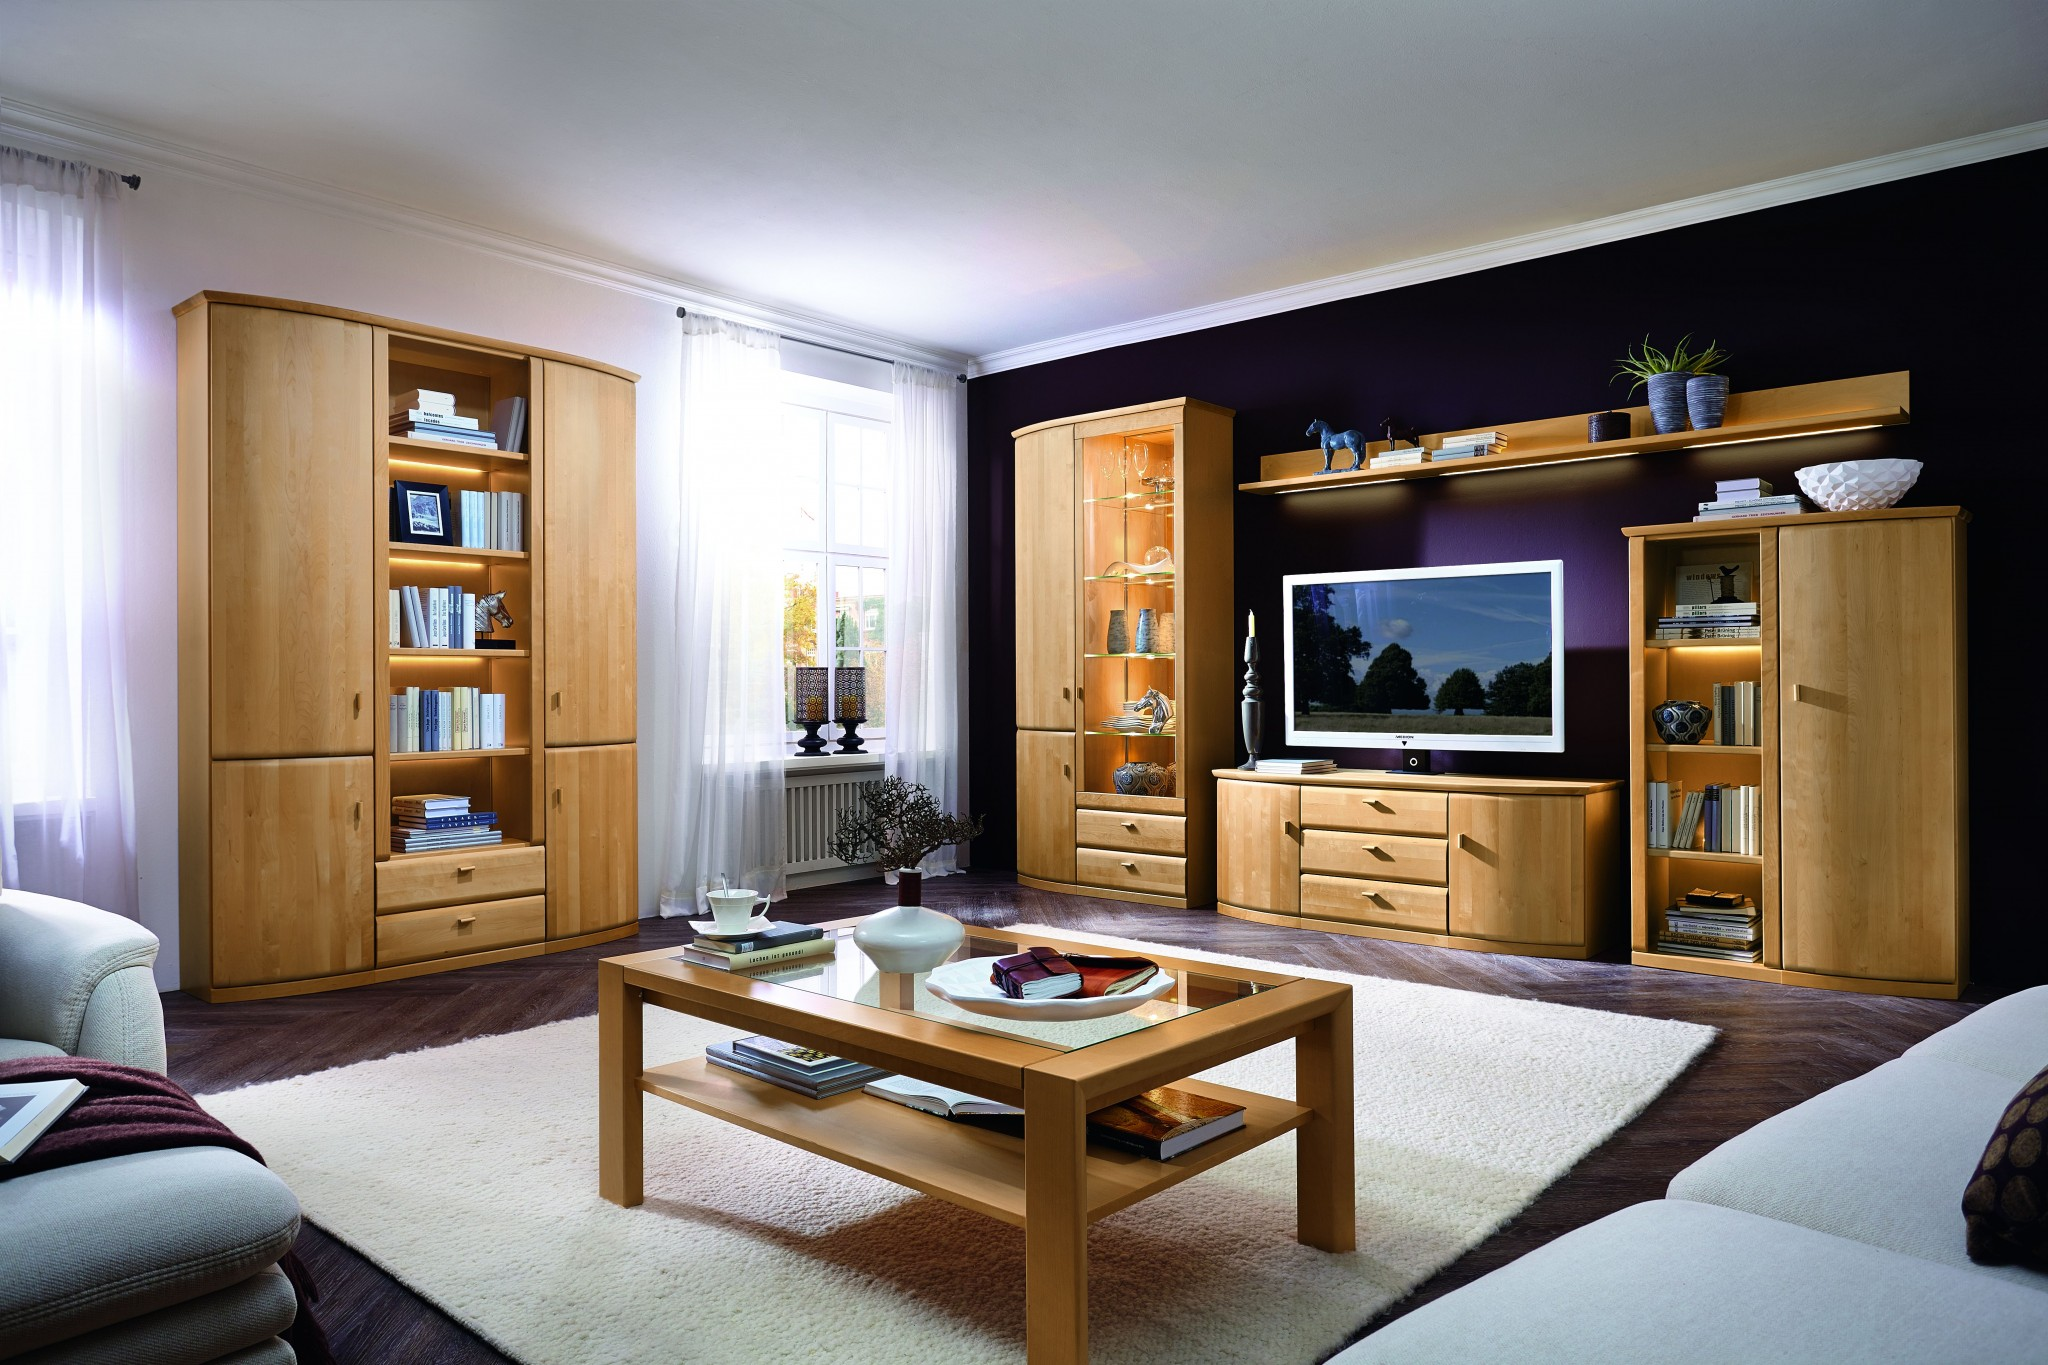 wohnwandprogramm ricardo in kernesche teilmassiv. Black Bedroom Furniture Sets. Home Design Ideas